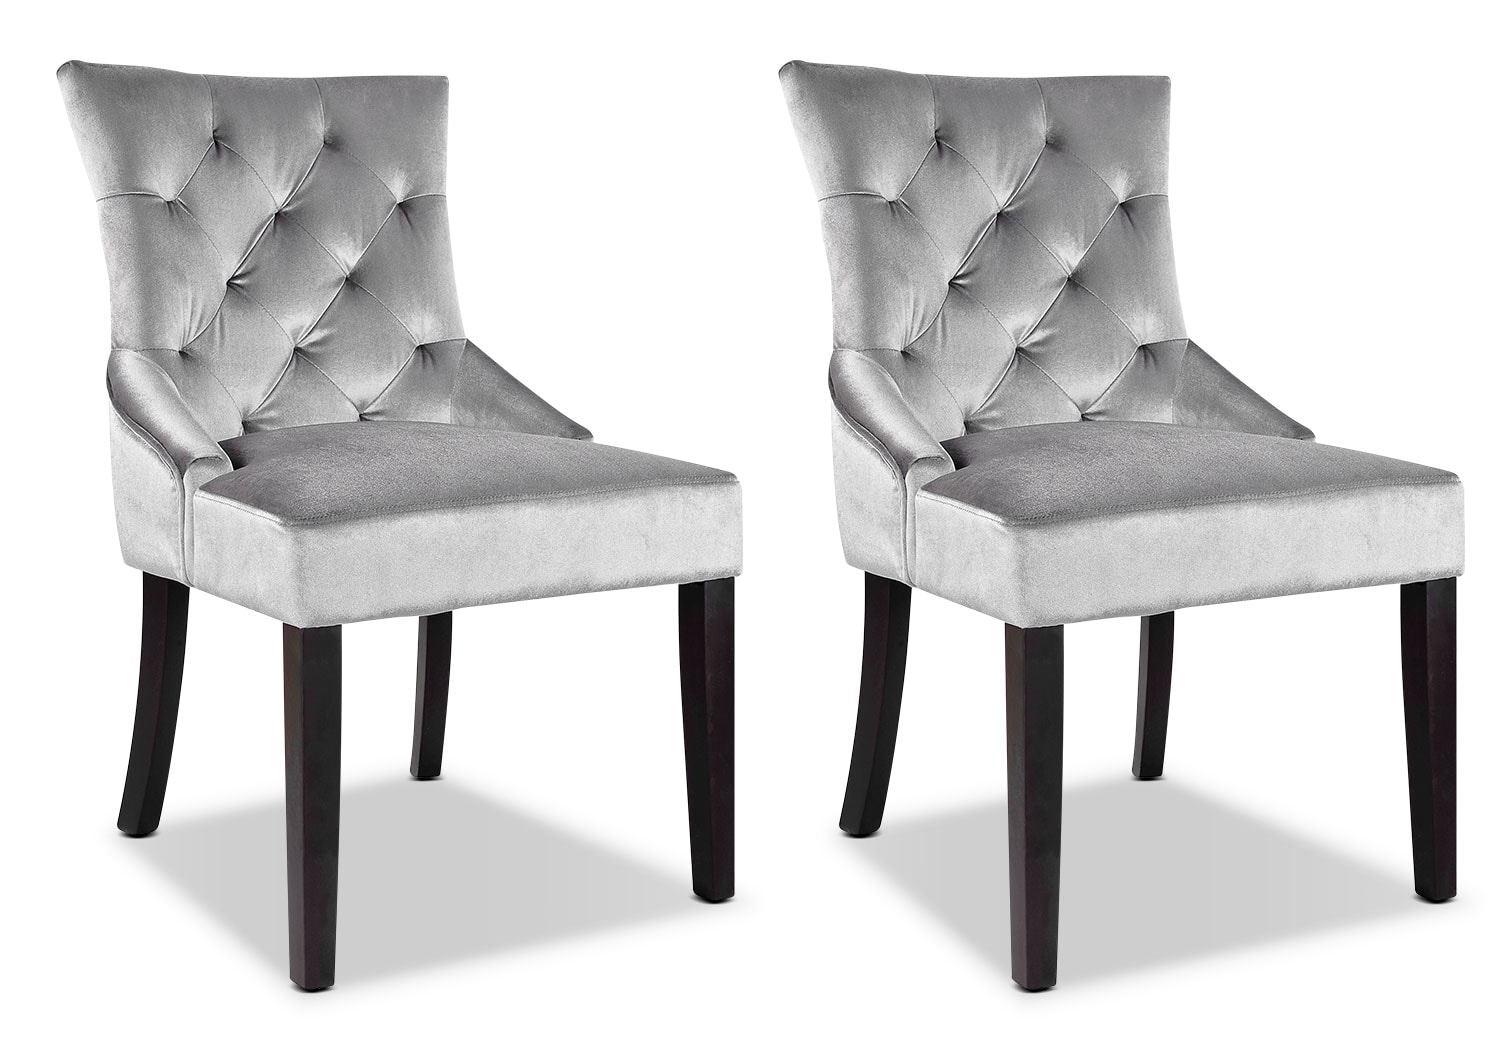 Living Room Furniture - LAD Velvet Fabric Button-Tufted Accent Chairs, Set of 2 – Grey